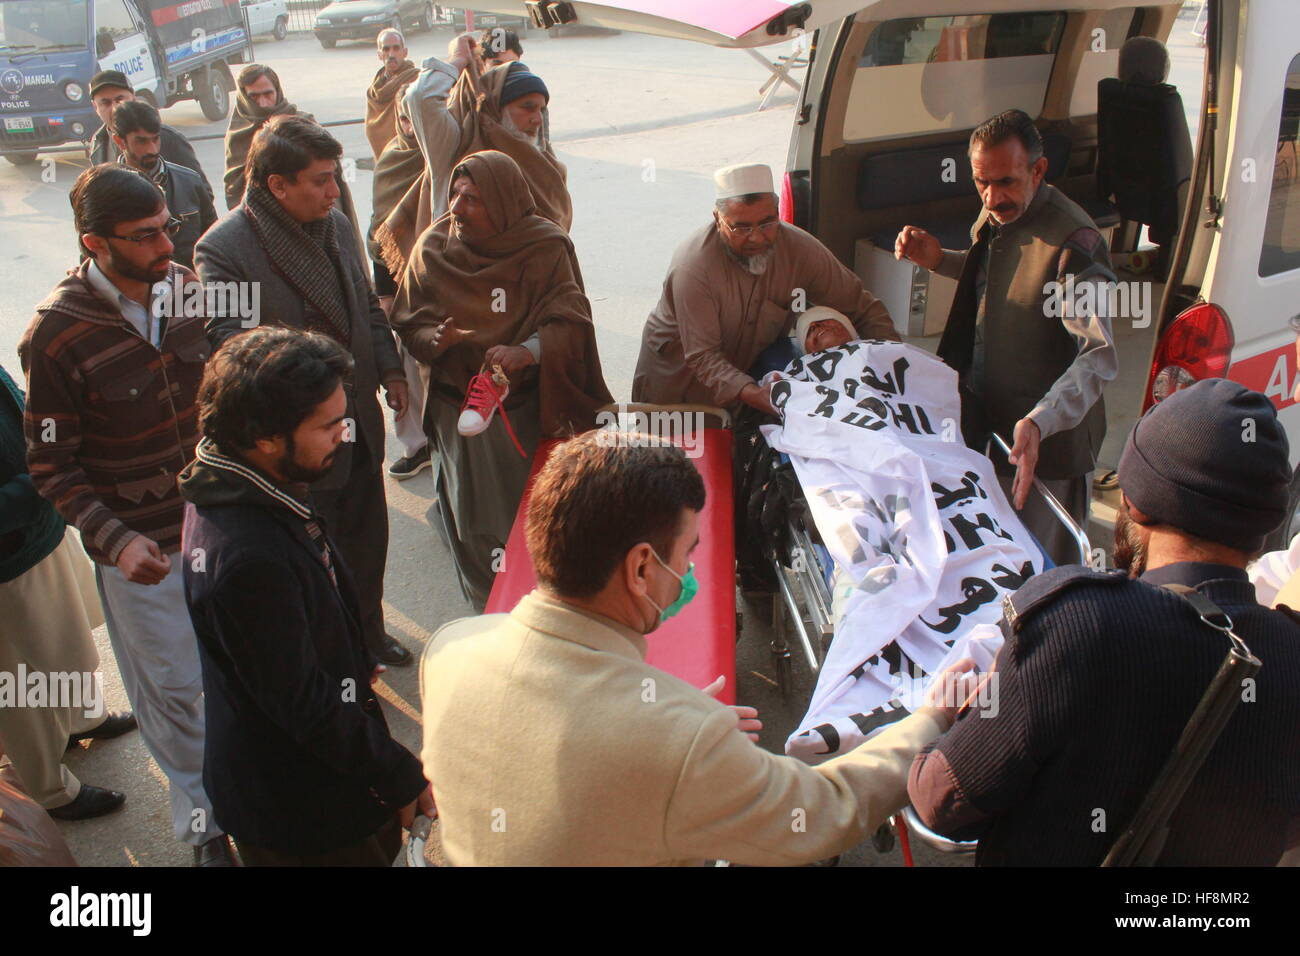 Abbottabad, Pakistan. 30th Dec, 2016. Local men Shifting Injured in hospital, at least 5 People Killed & 8 sustain Stock Photo